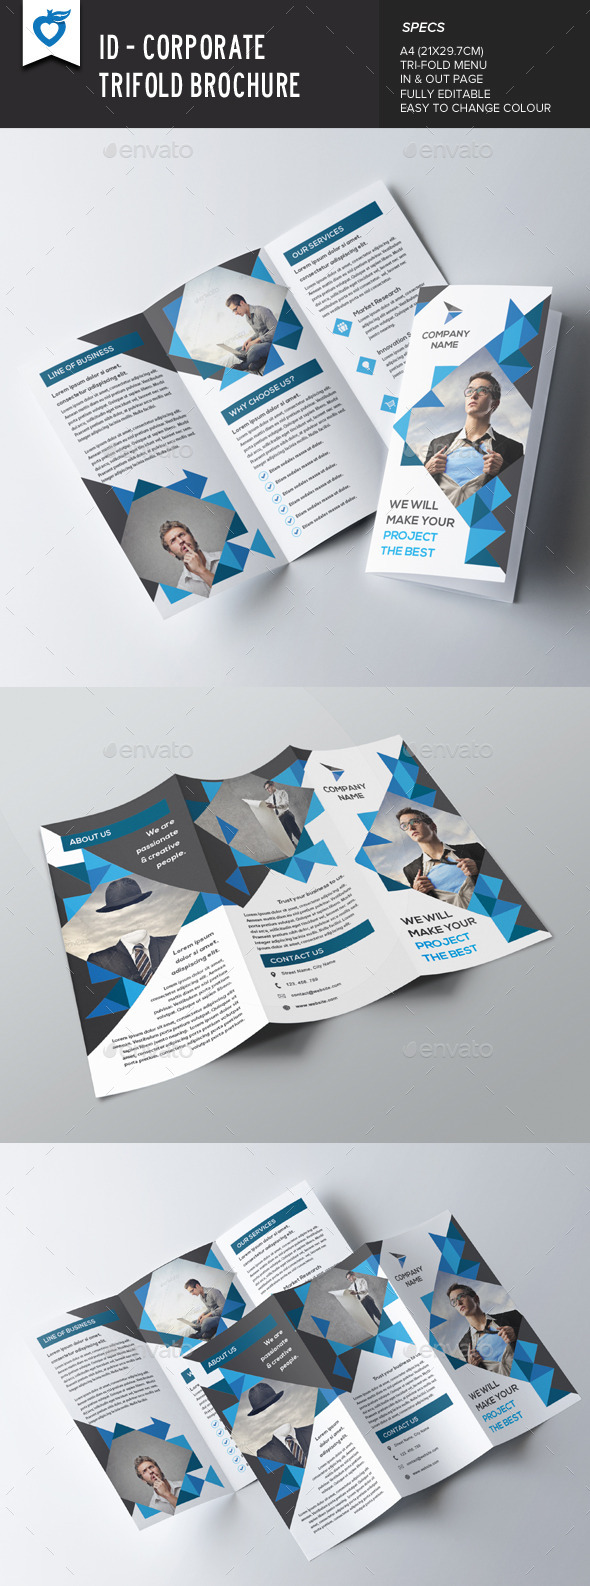 GraphicRiver ID Corporate Trifold Brochure 8927369